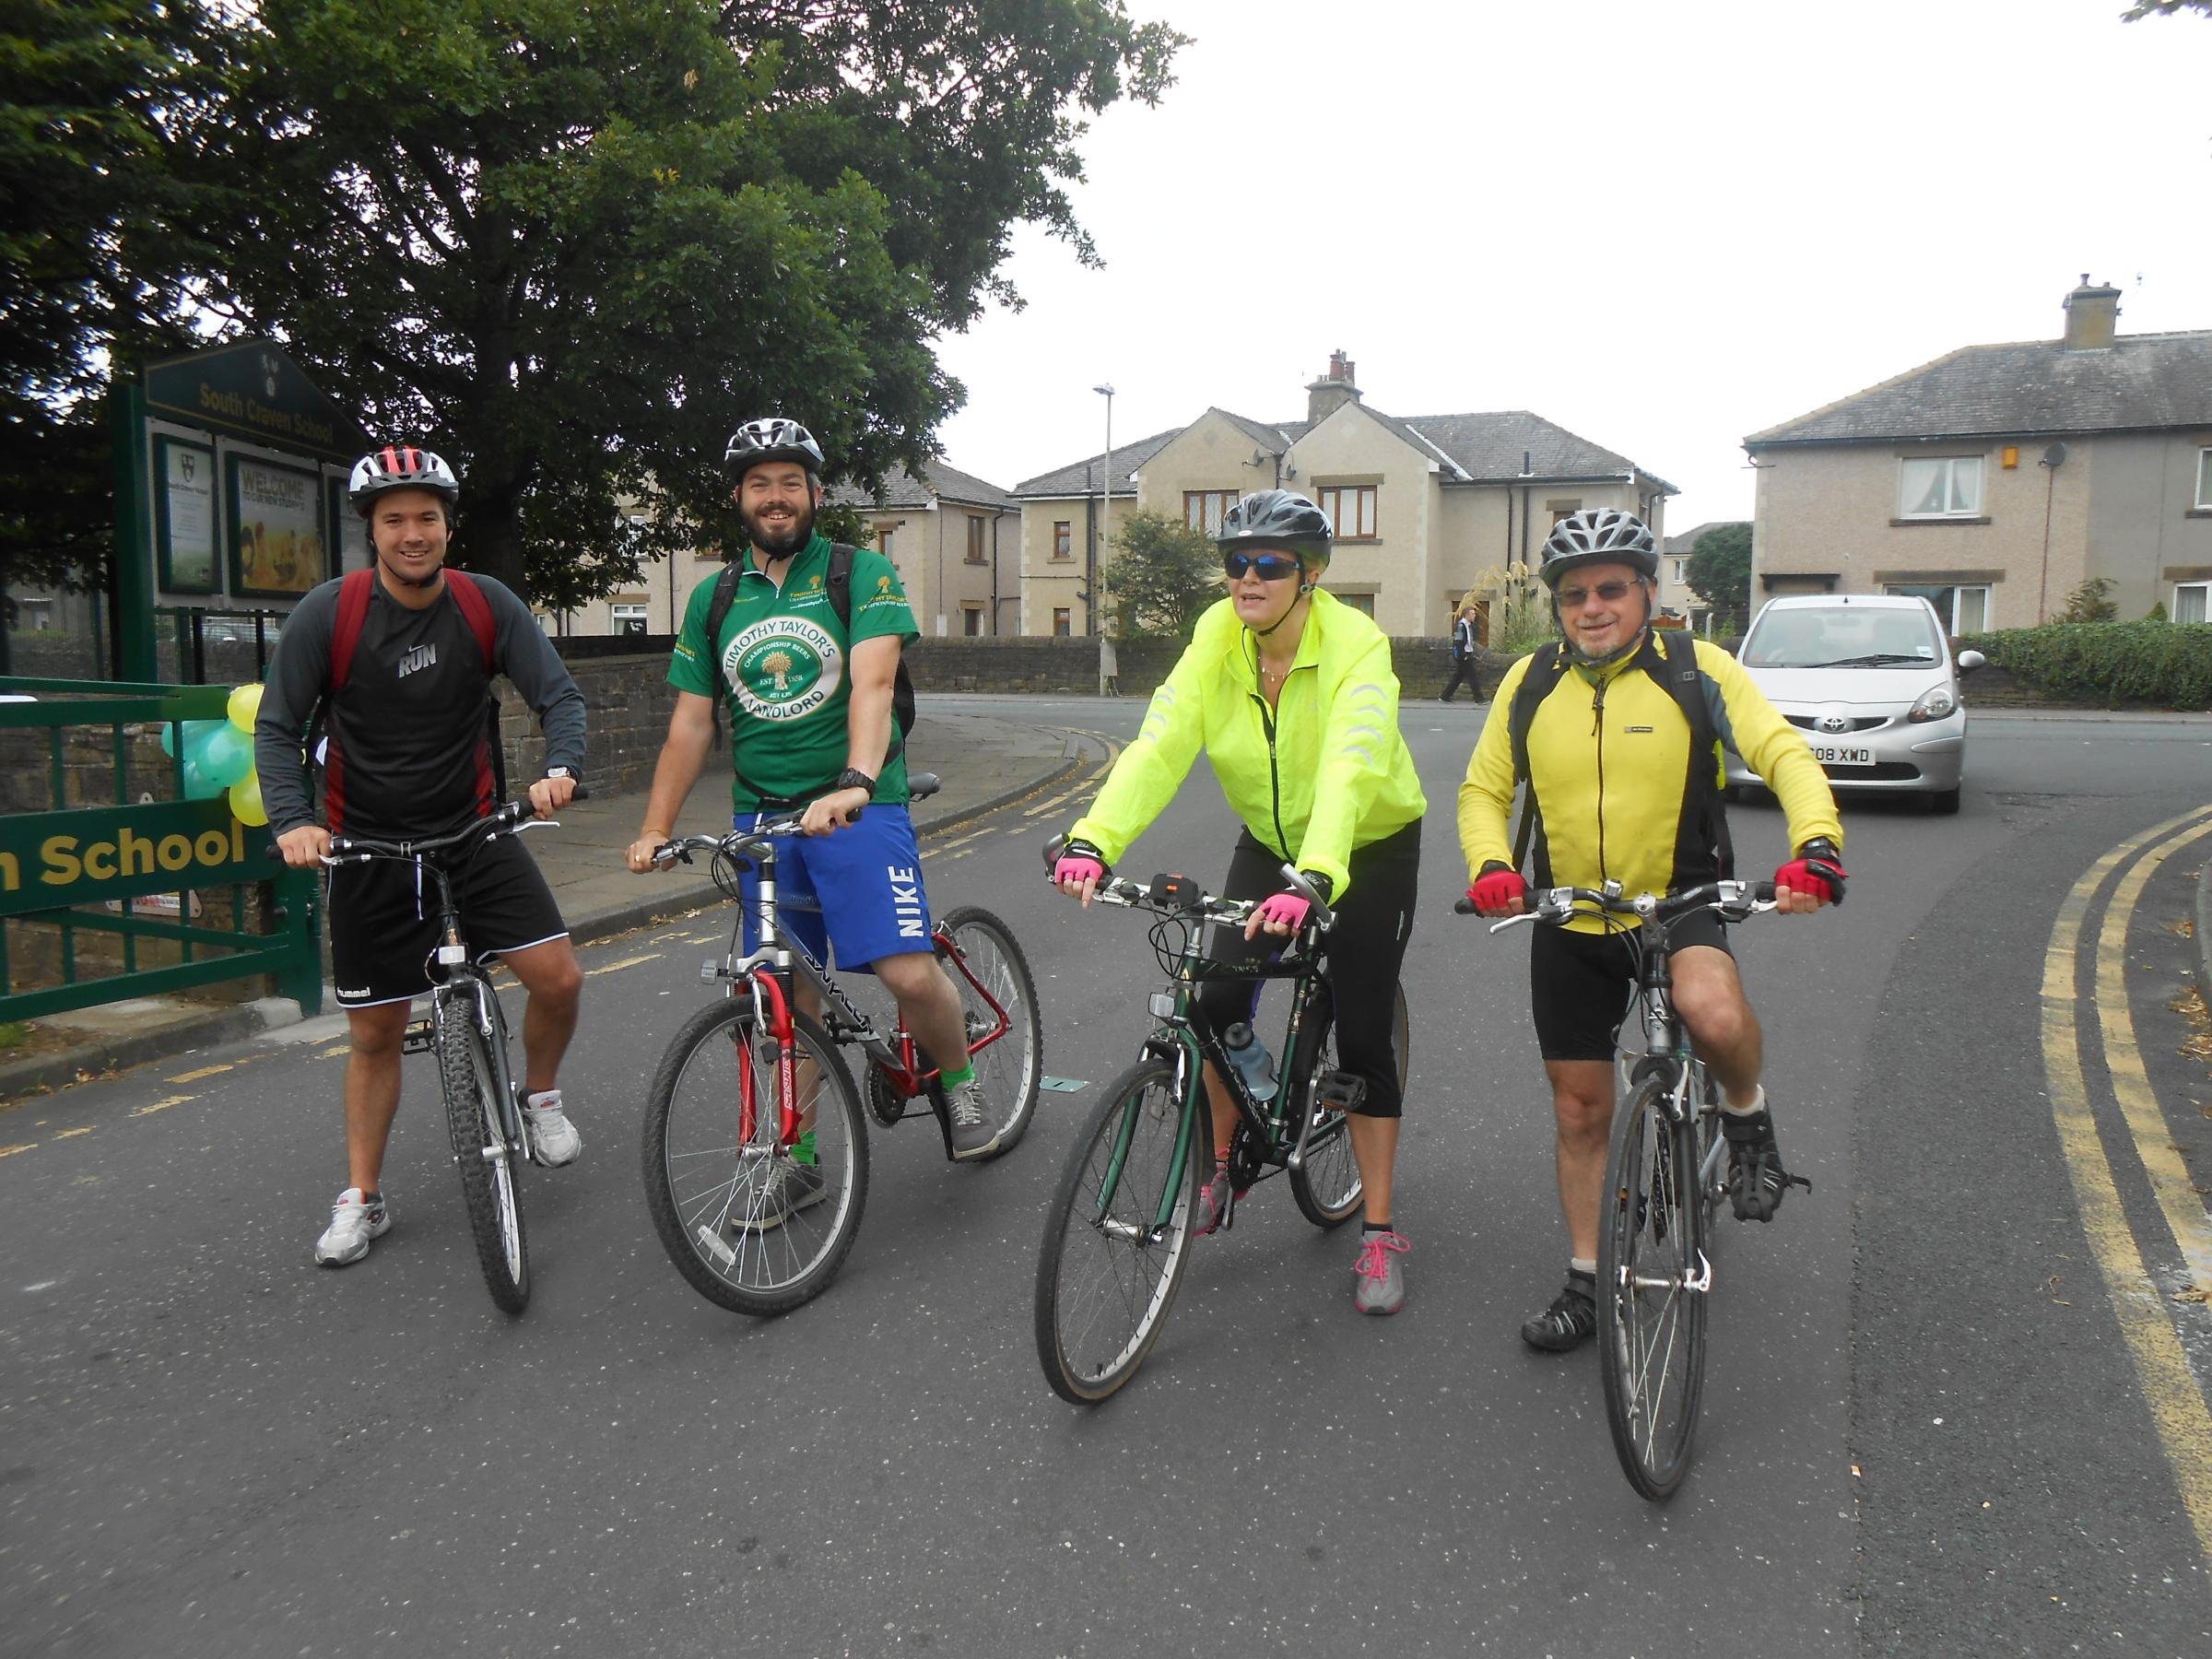 South Craven School cyclists stage a Grand Arrival